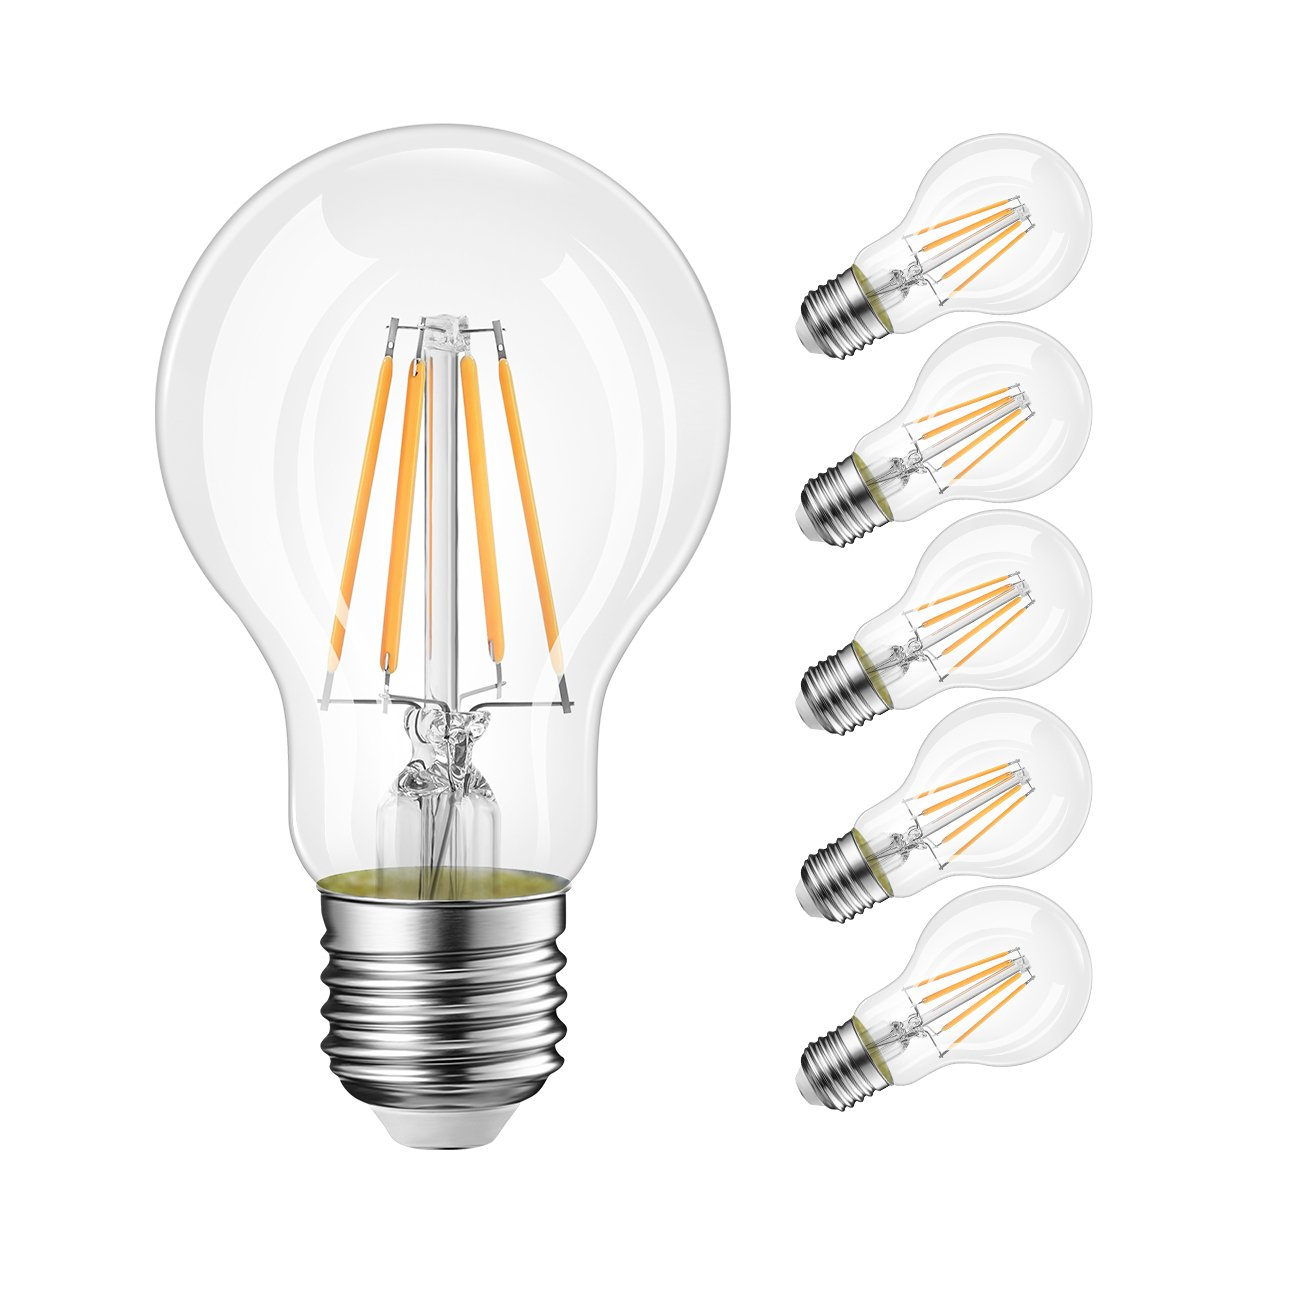 A19 LED Vintage LED Filament Bulb E26 Base,LVWIT Dimmable 6.5W (60W Equivalent),3000K Soft White 800 Lumens,Omnidirectional, UL-Listed, Pack of 6